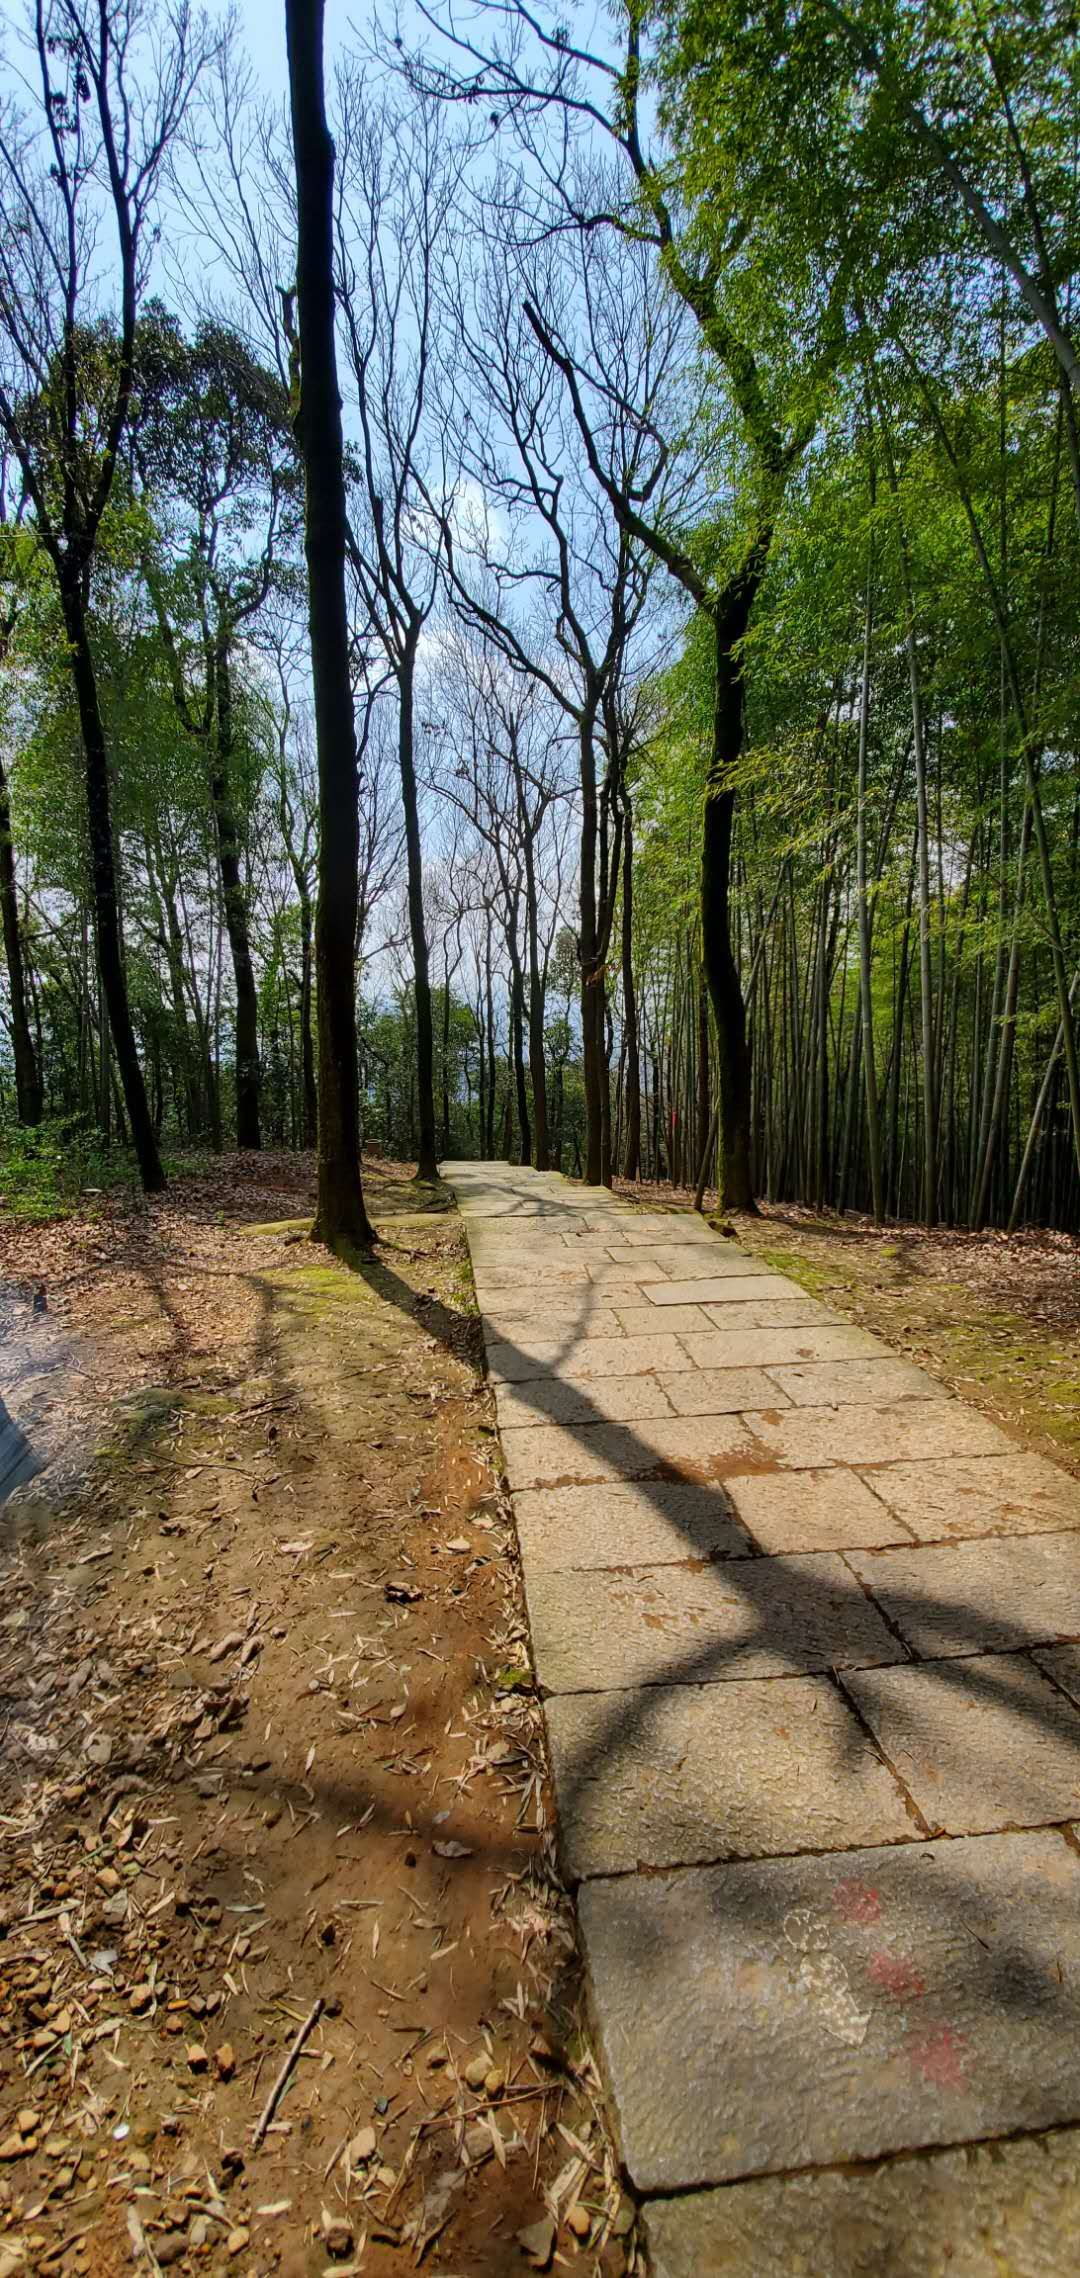 hiking to Five Clouds Temple (五云寺)in Hangzhou